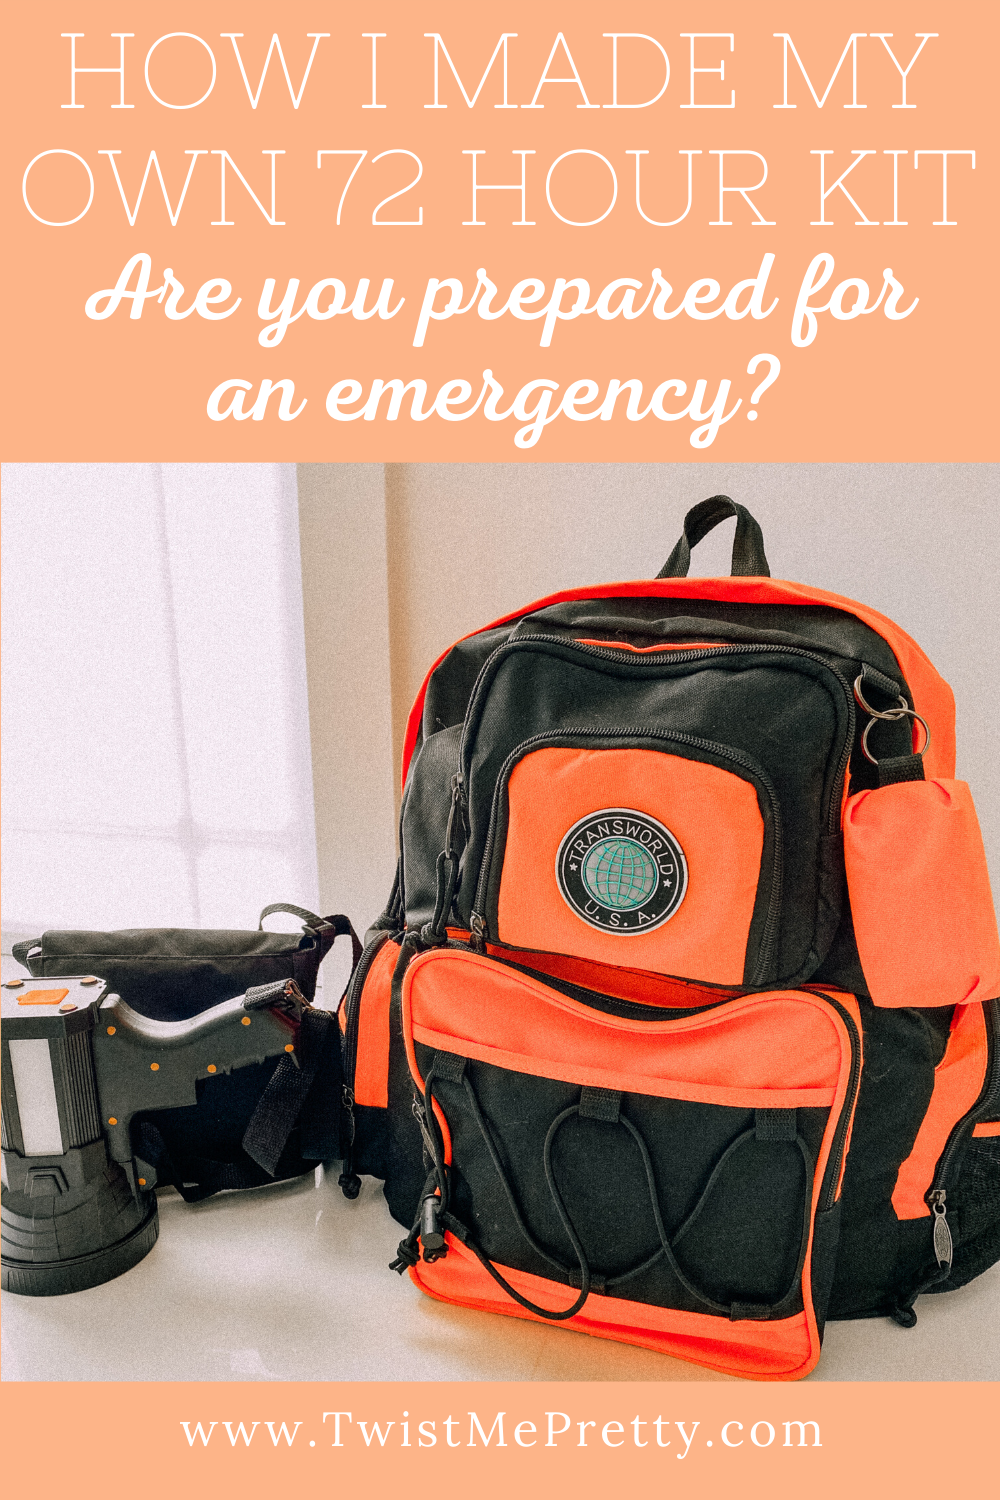 How I made my own 72 hour kit. Are you prepared for an emergency? www.twistmepretty.com